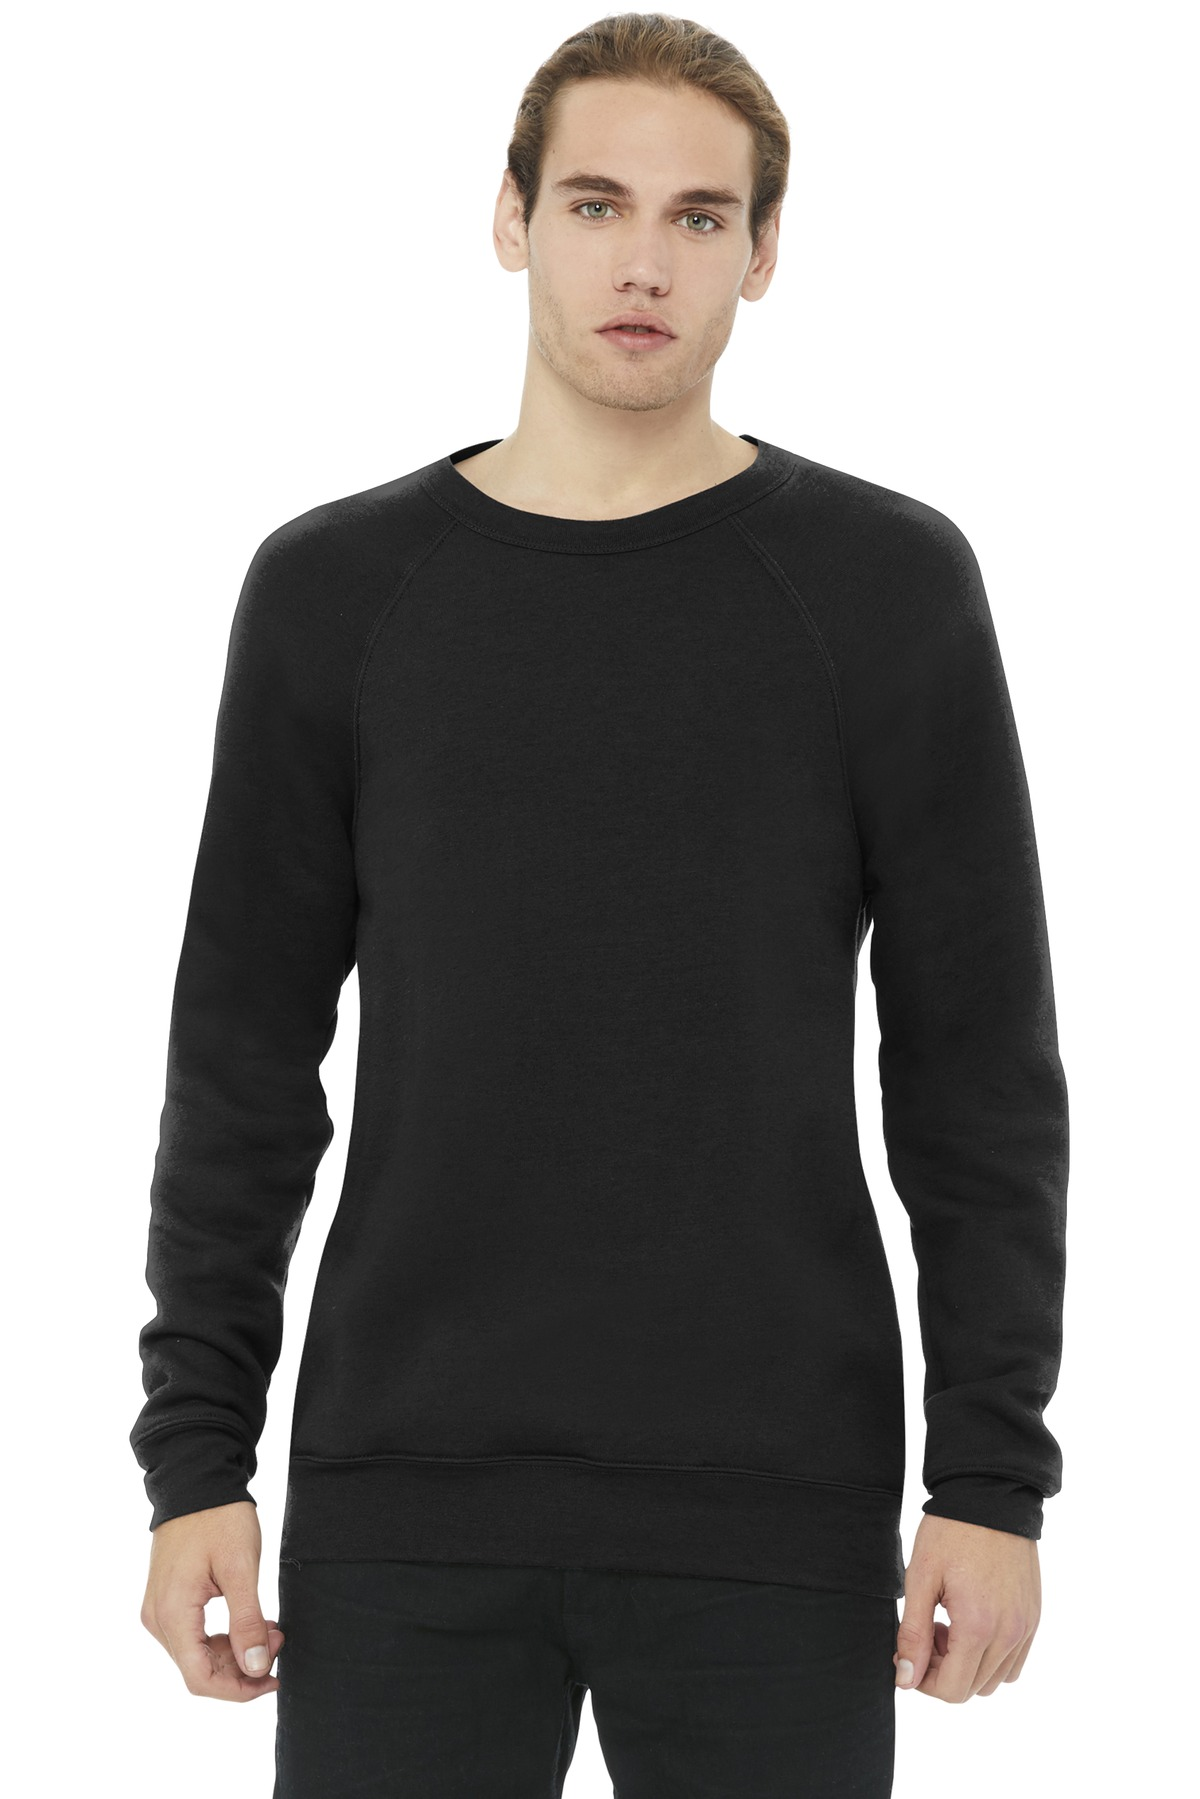 BELLA+CANVAS  ®  Unisex Sponge Fleece Raglan Sweatshirt. BC3901 - Black (Poly-Cotton)